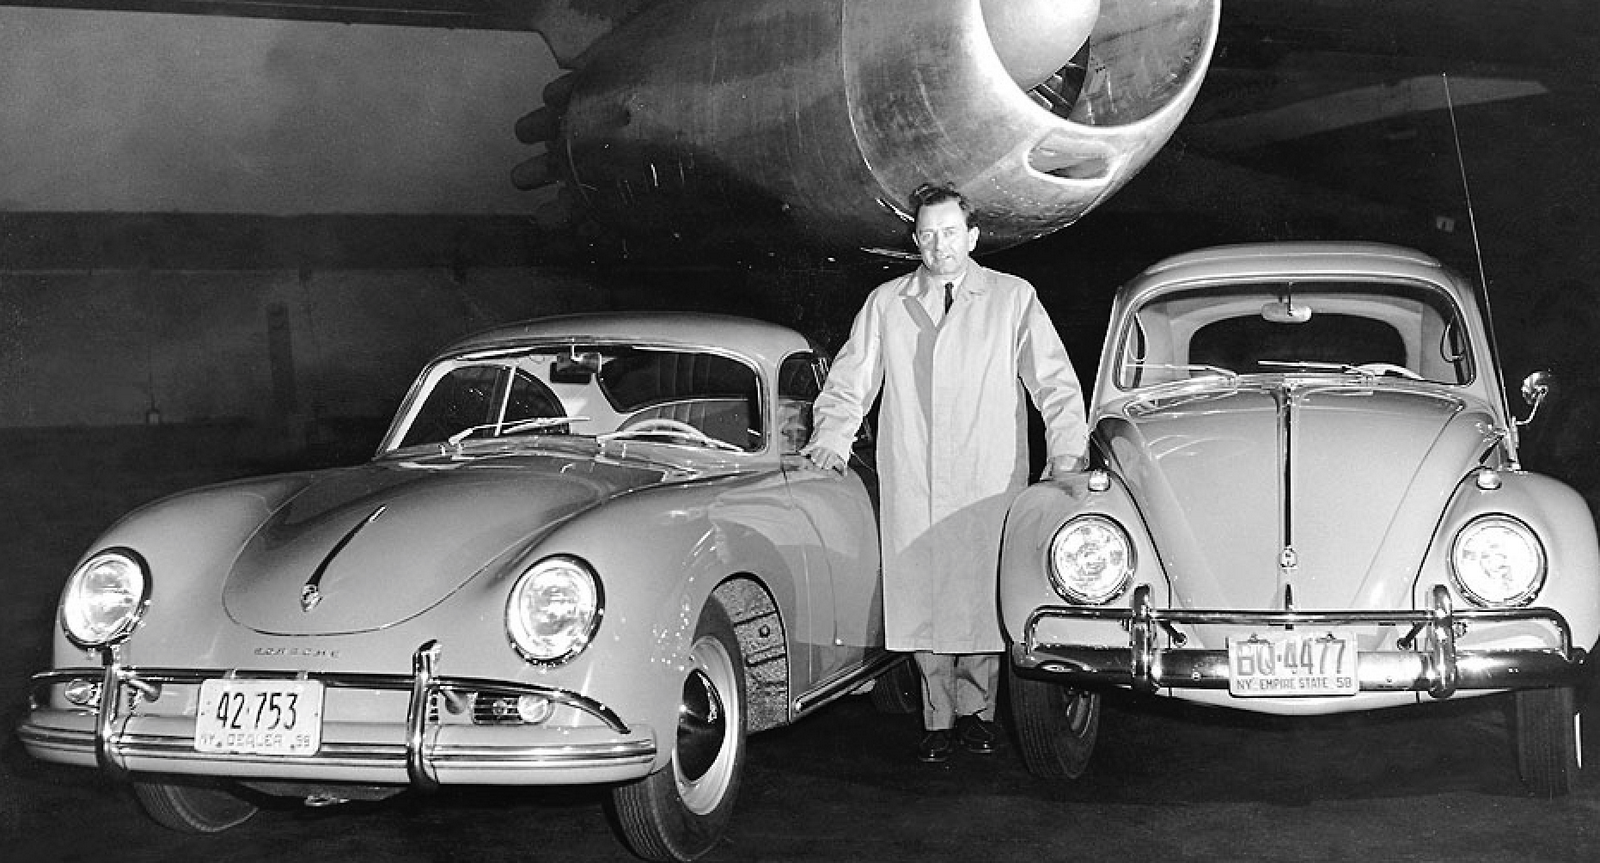 10 Things you did not know about Volkswagen - Sheet2